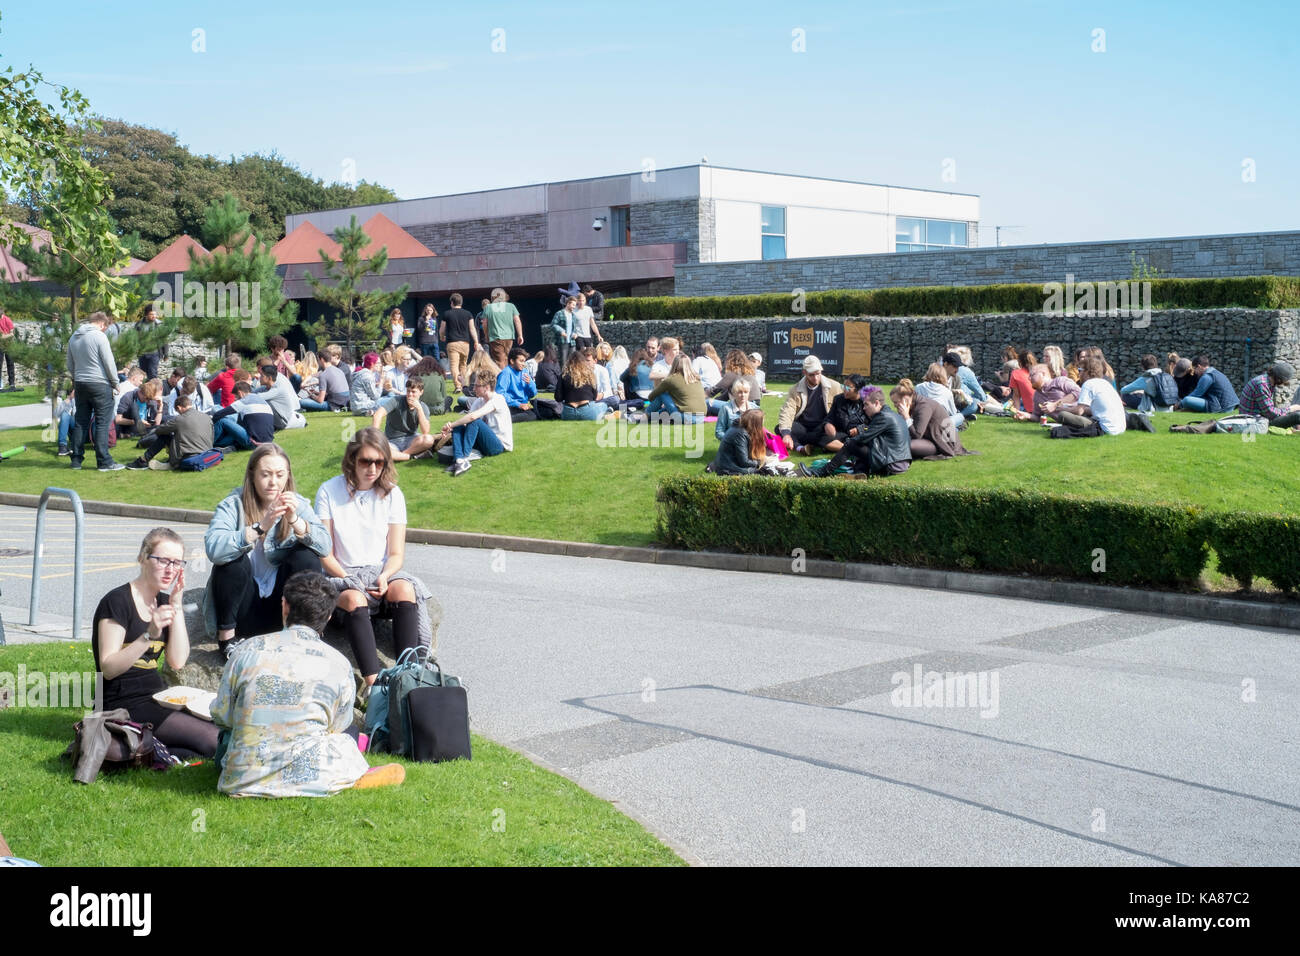 Cornwall, UK. 25th Sep, 2017. UK Weather. Students converge on the green areas of Falmouth University's Tremough Stock Photo